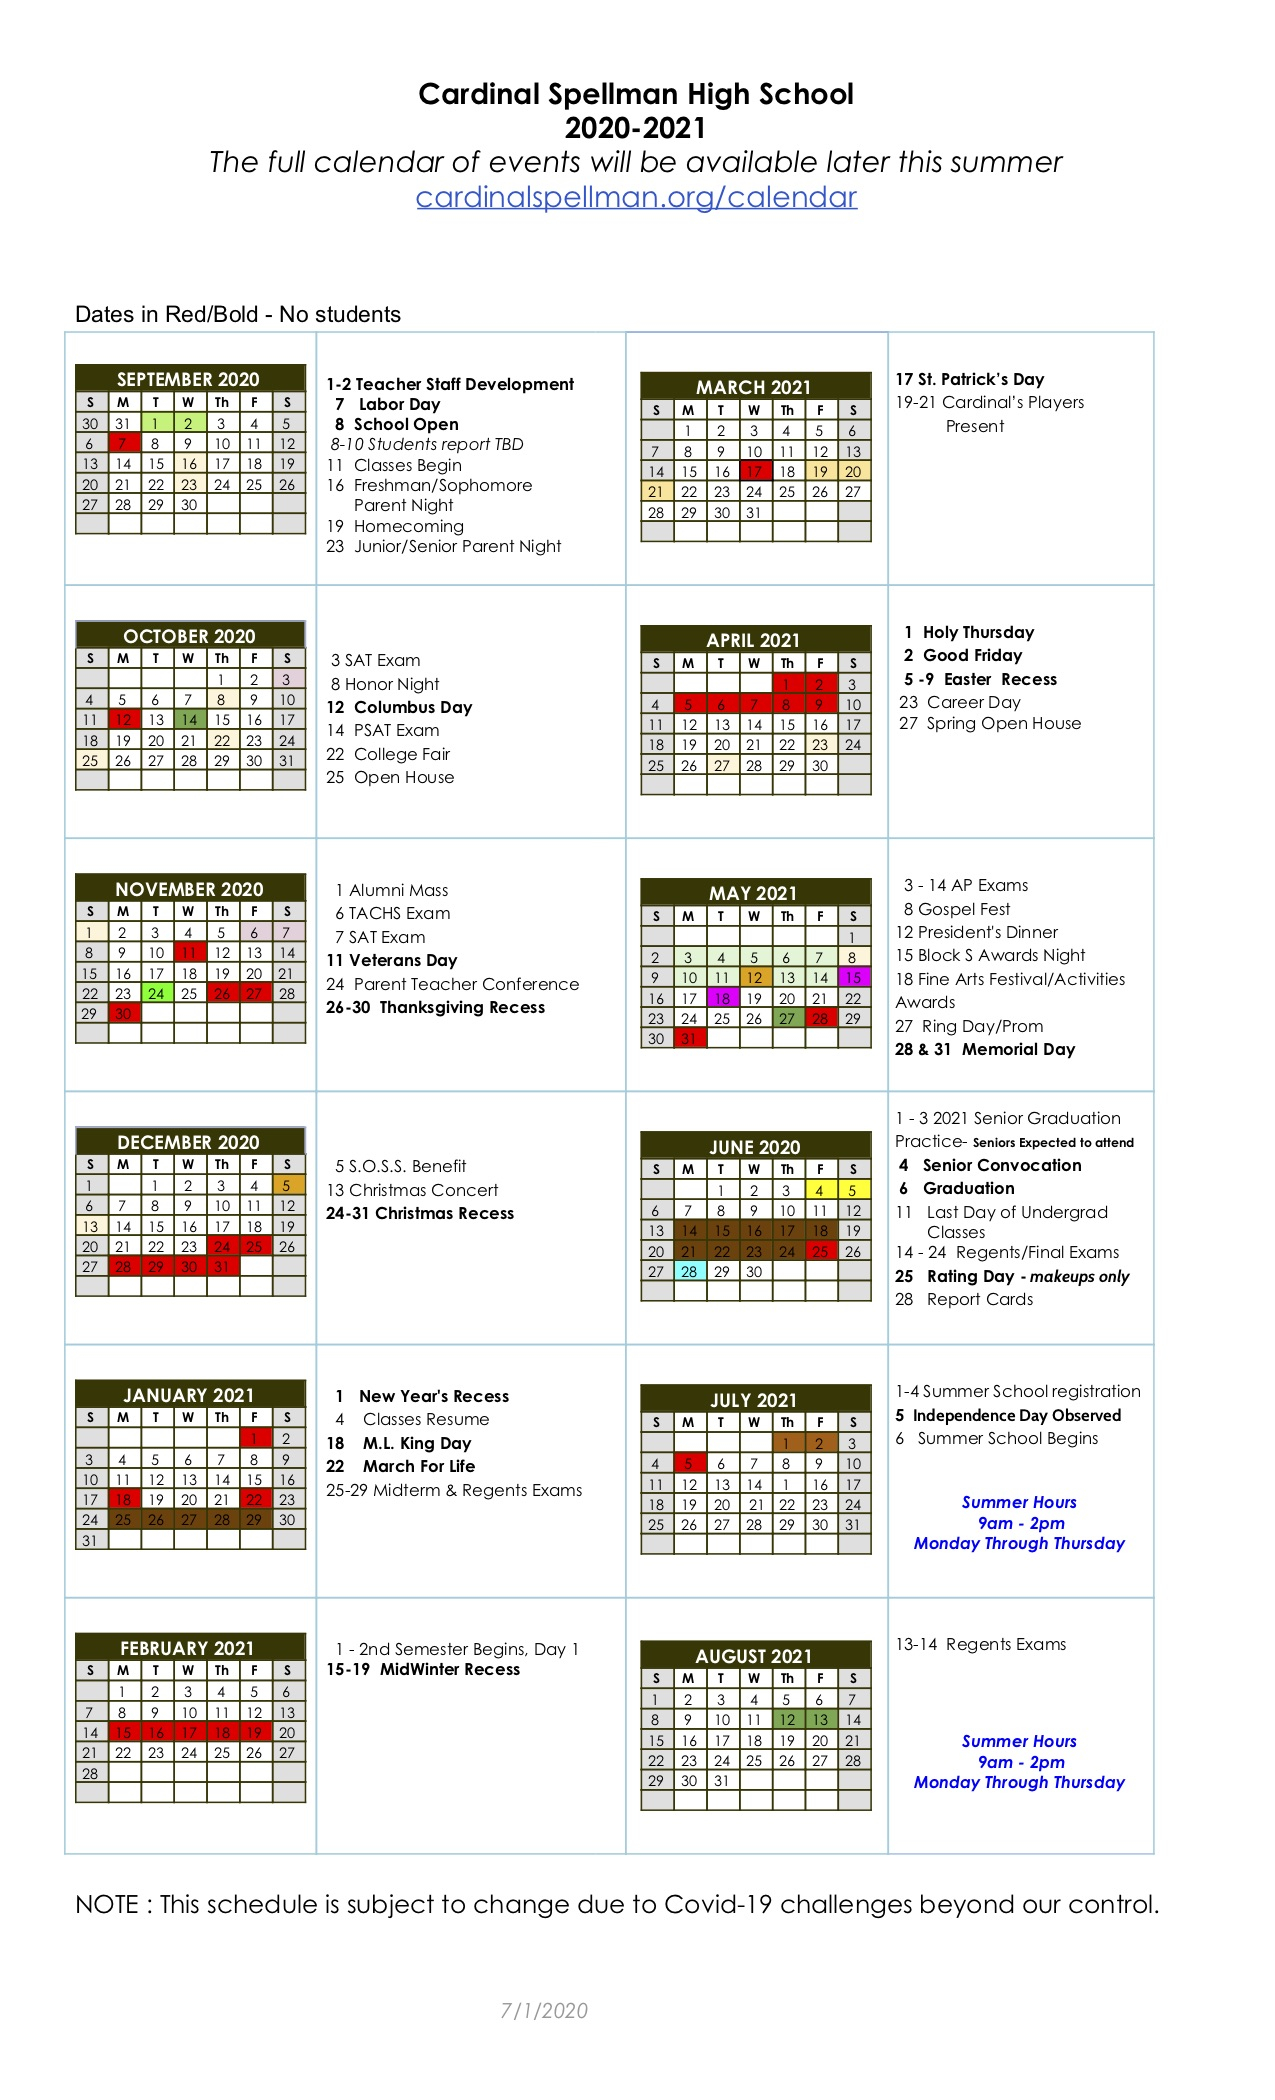 University Of New Haven Academic Calendar 2021 | 2021 Calendar pertaining to Univ Of Ri Academic Calendar 2021-2020